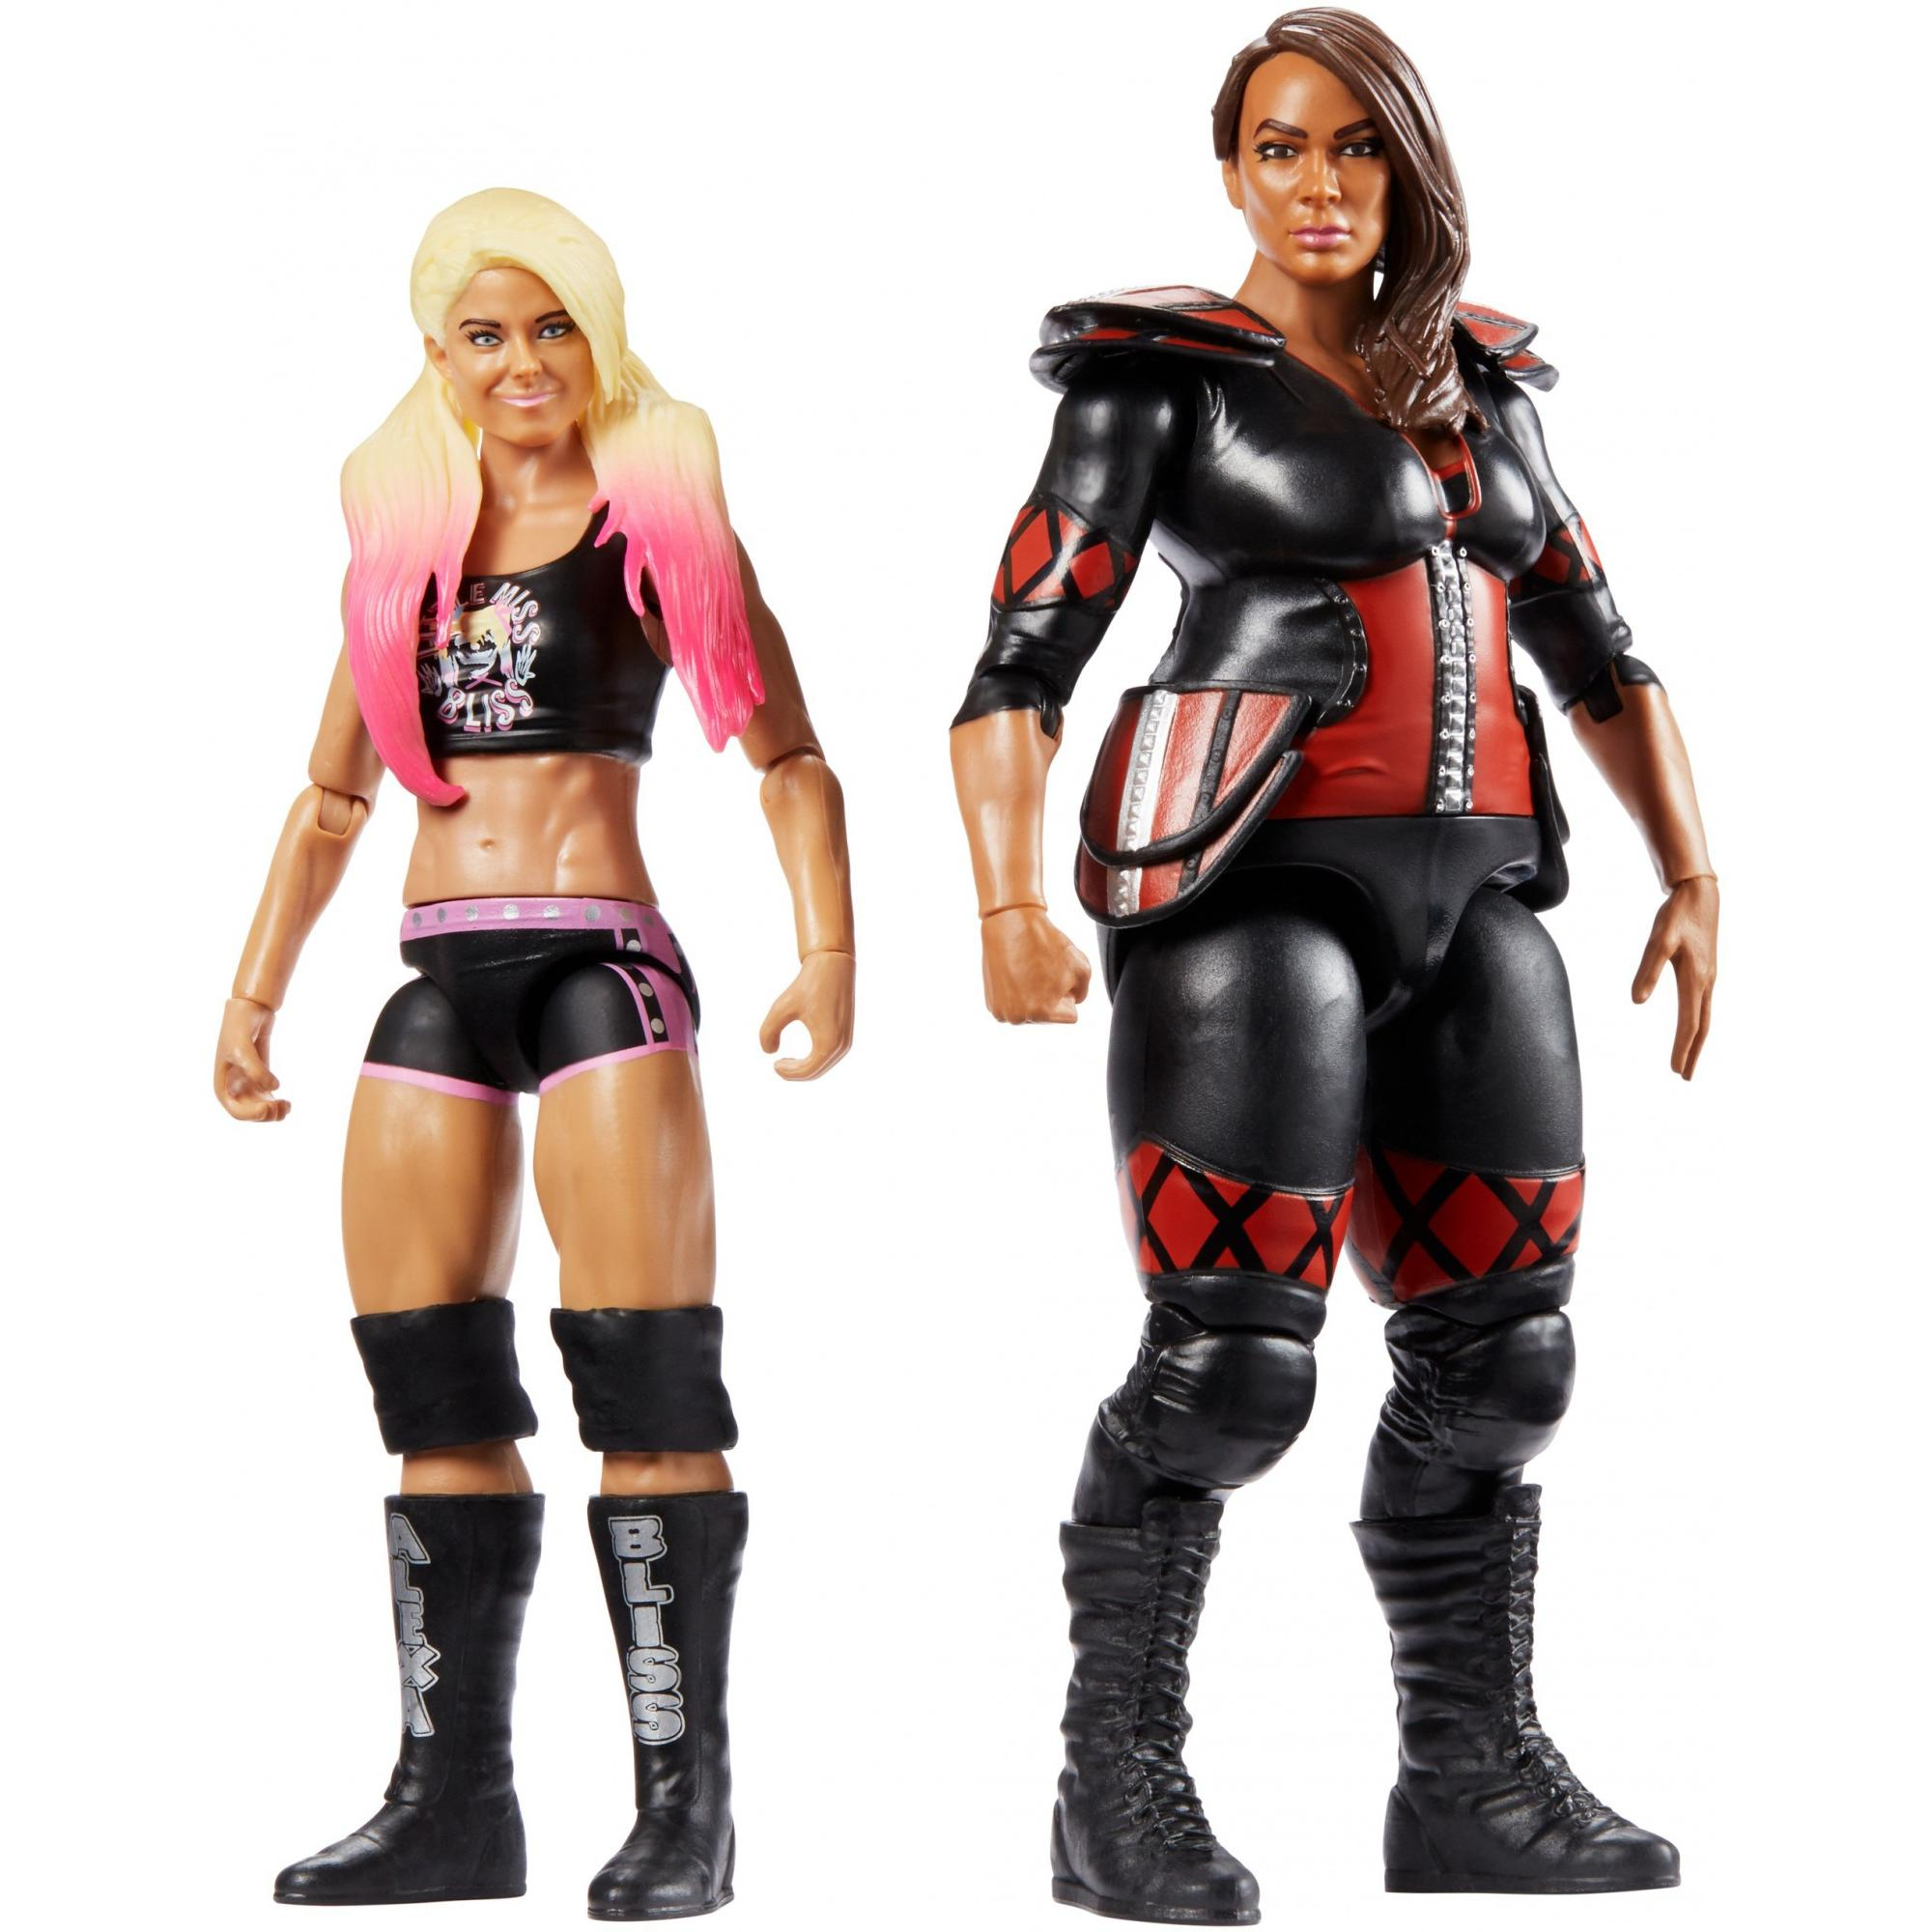 WWE Nia Jax & Alexa Bliss 2-Pack